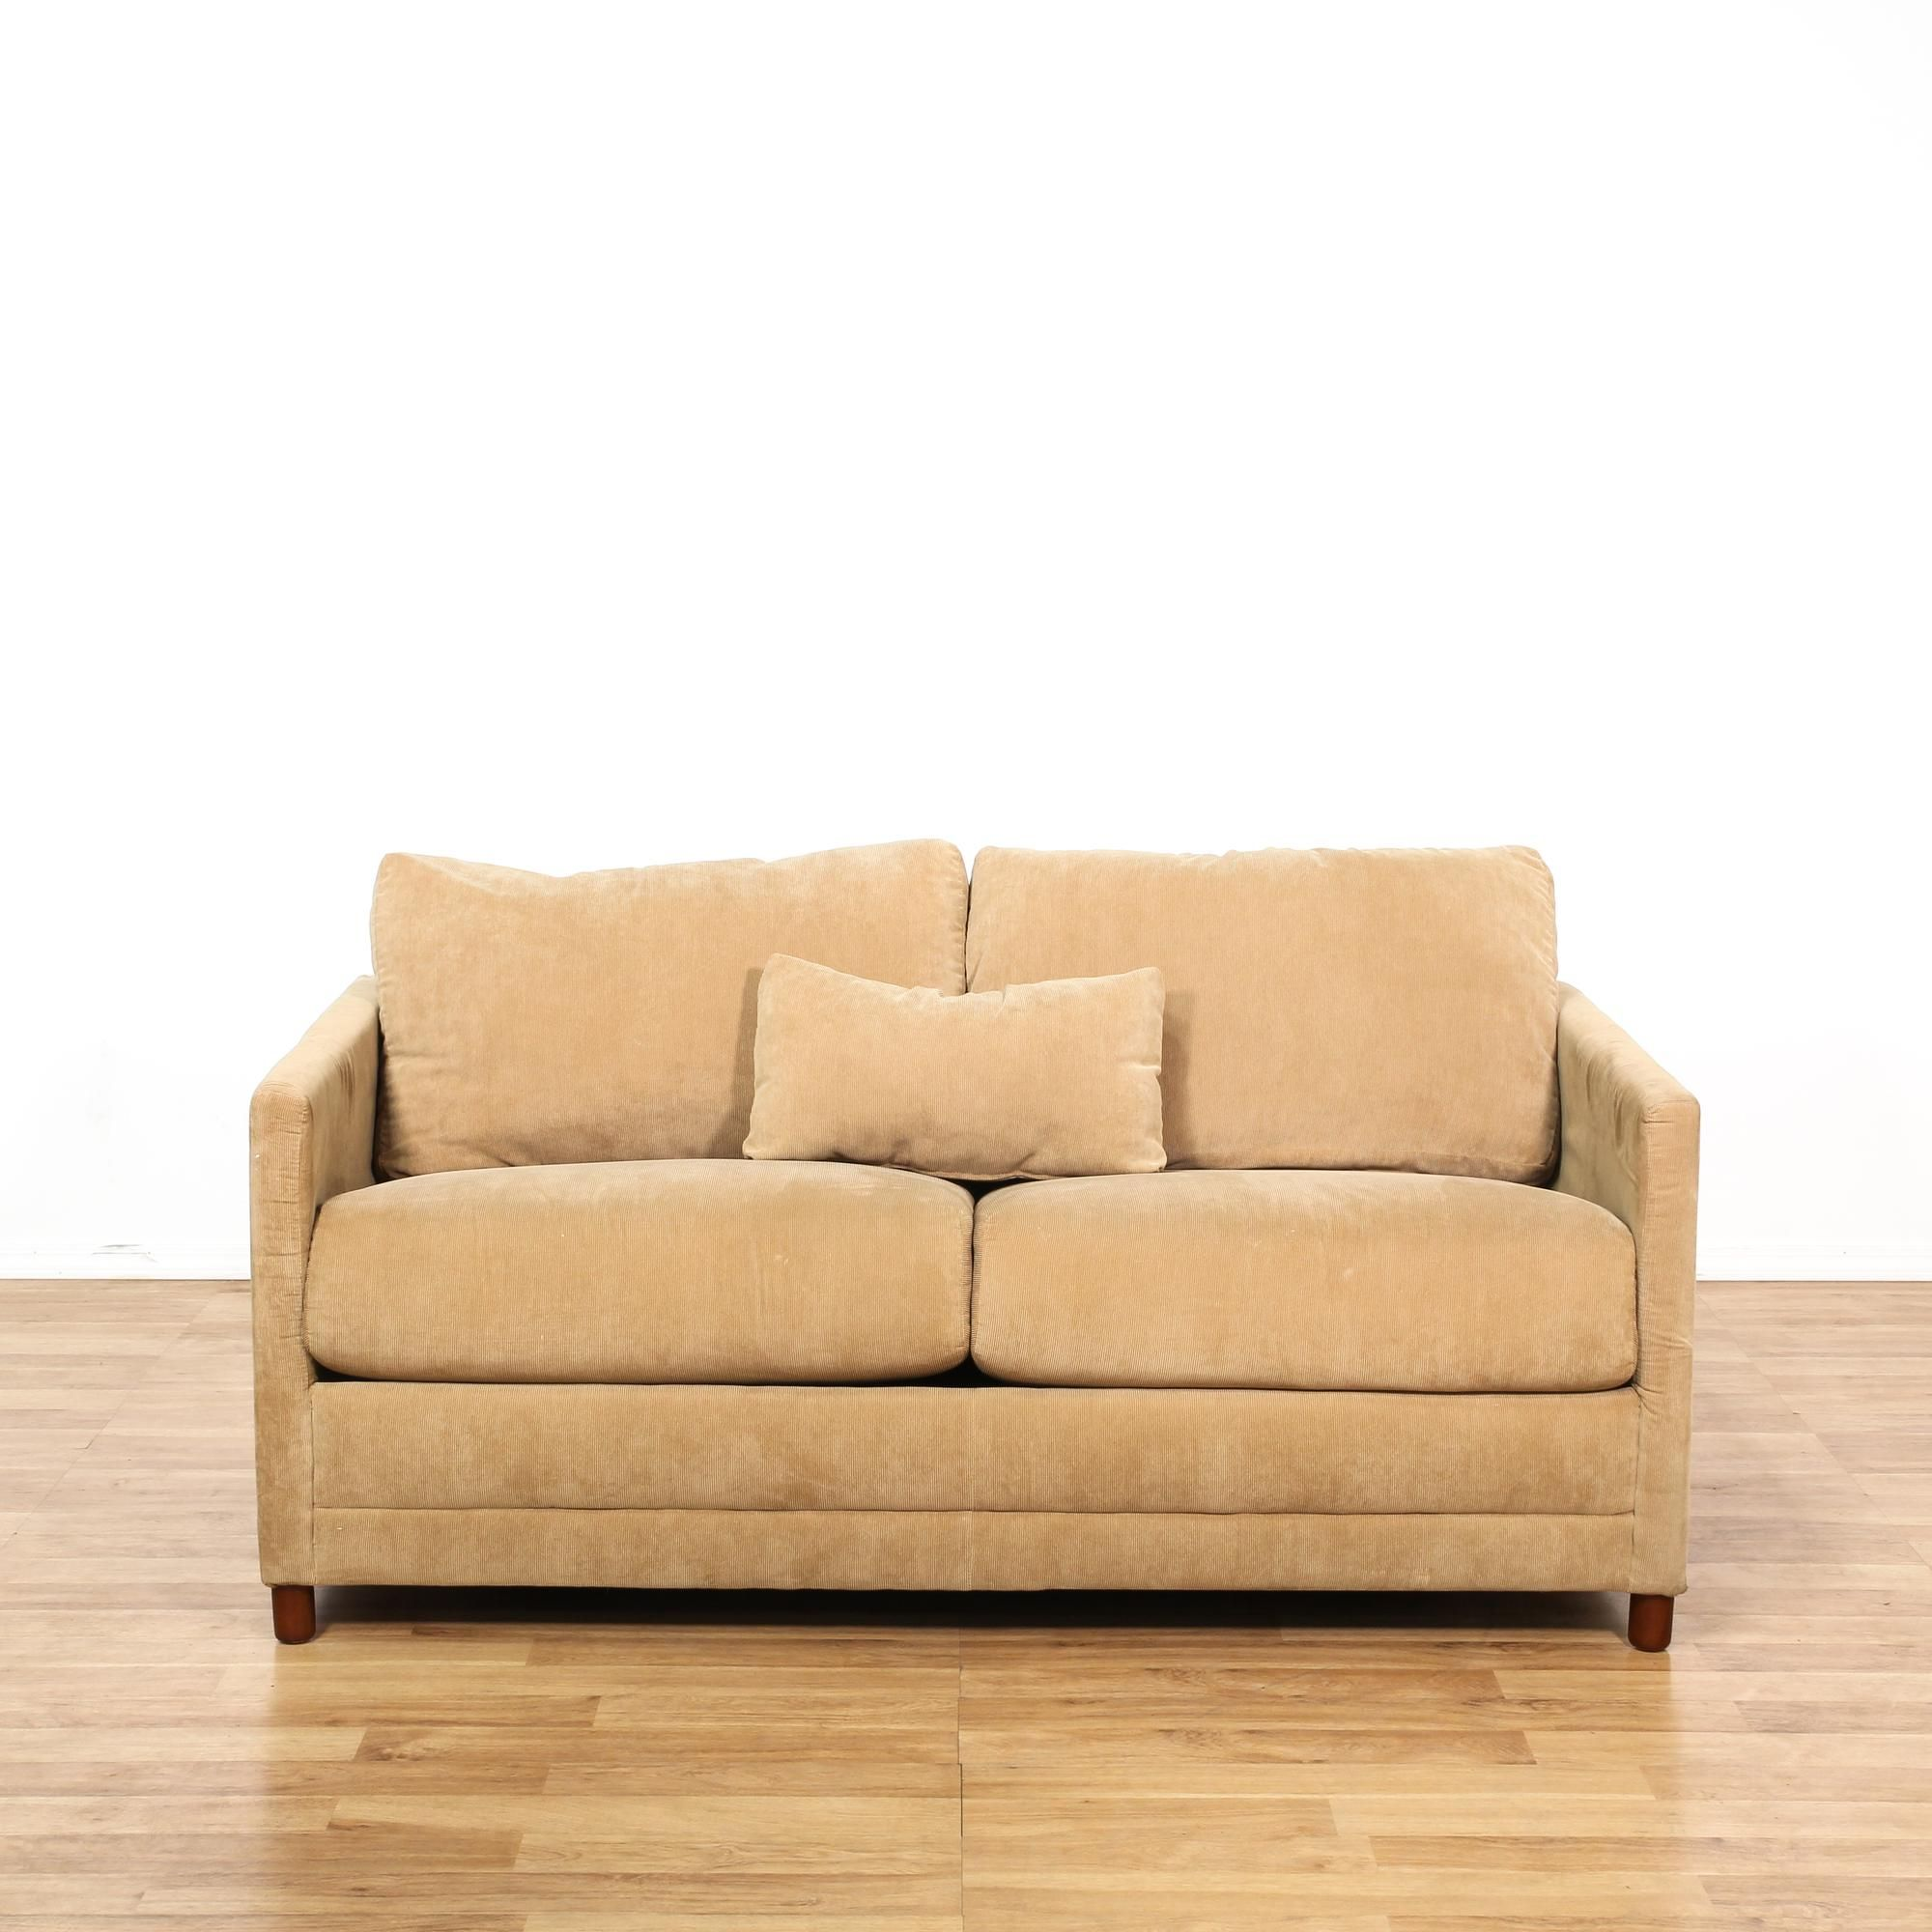 This Sleeper Sofa Is Upholstered In A